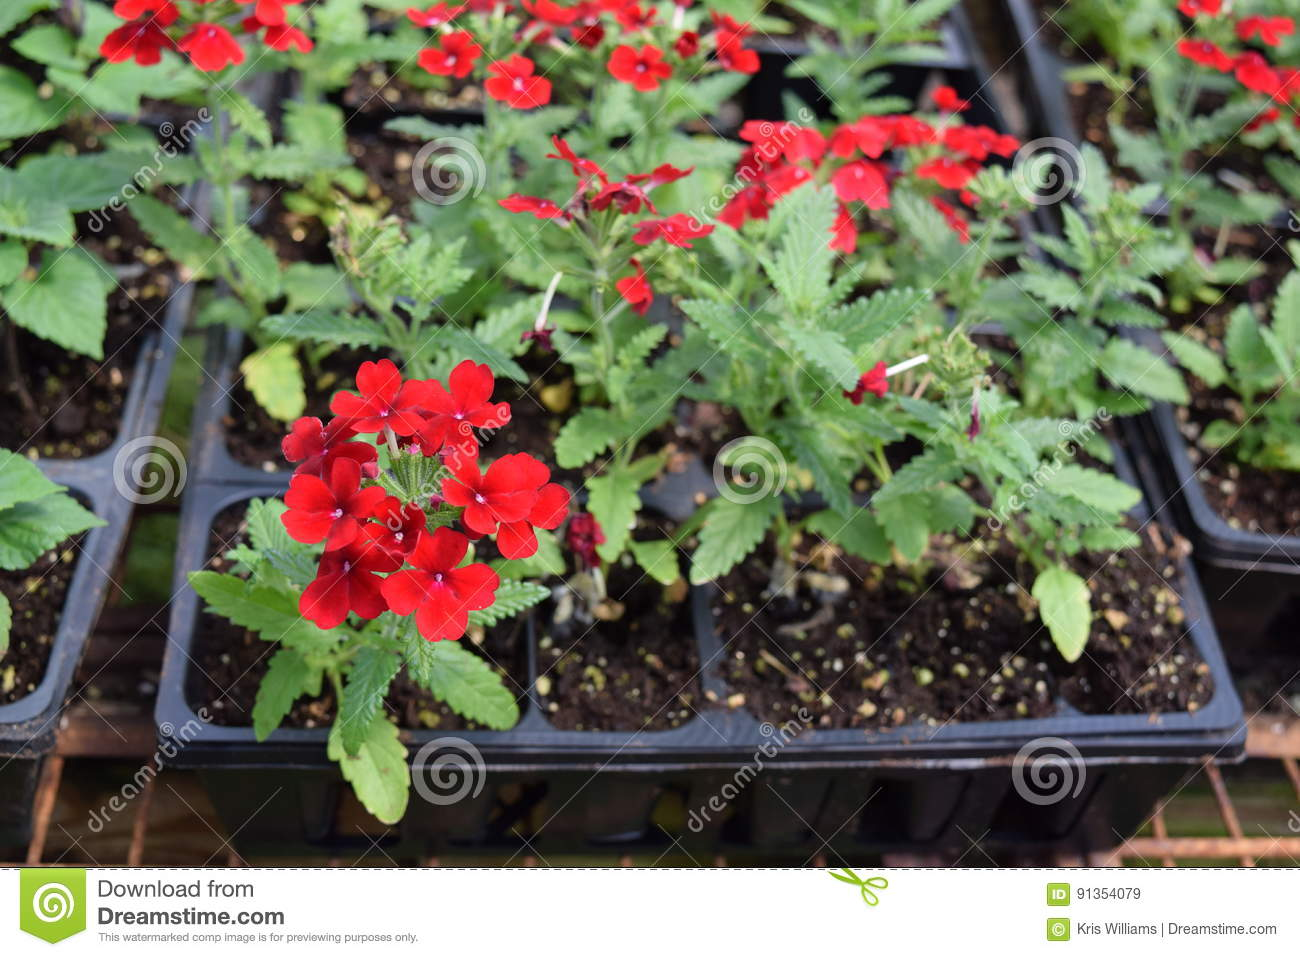 Red Verbena bunches in nursery flat